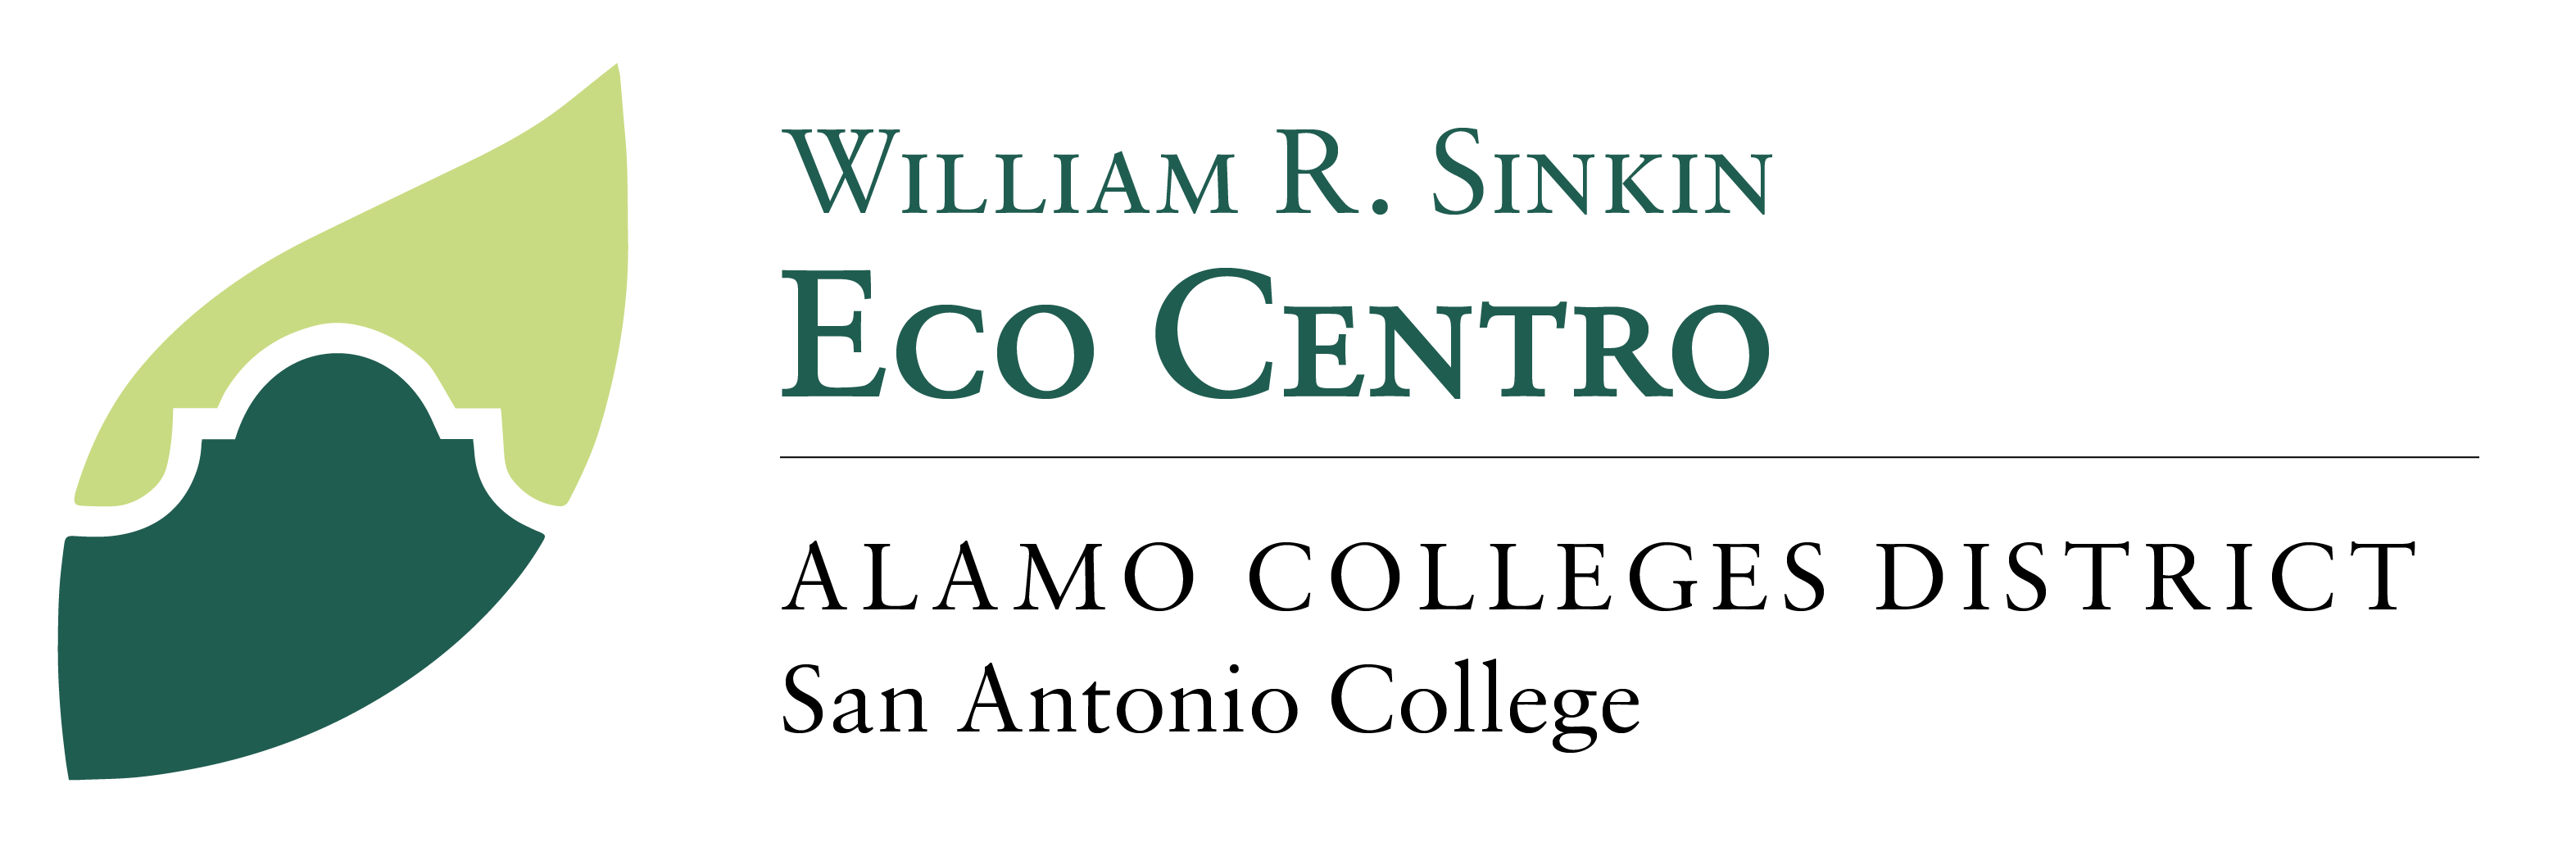 Sac Experience Sac Community Centers And Facilities William R Sinkin Eco Centro Alamo Colleges